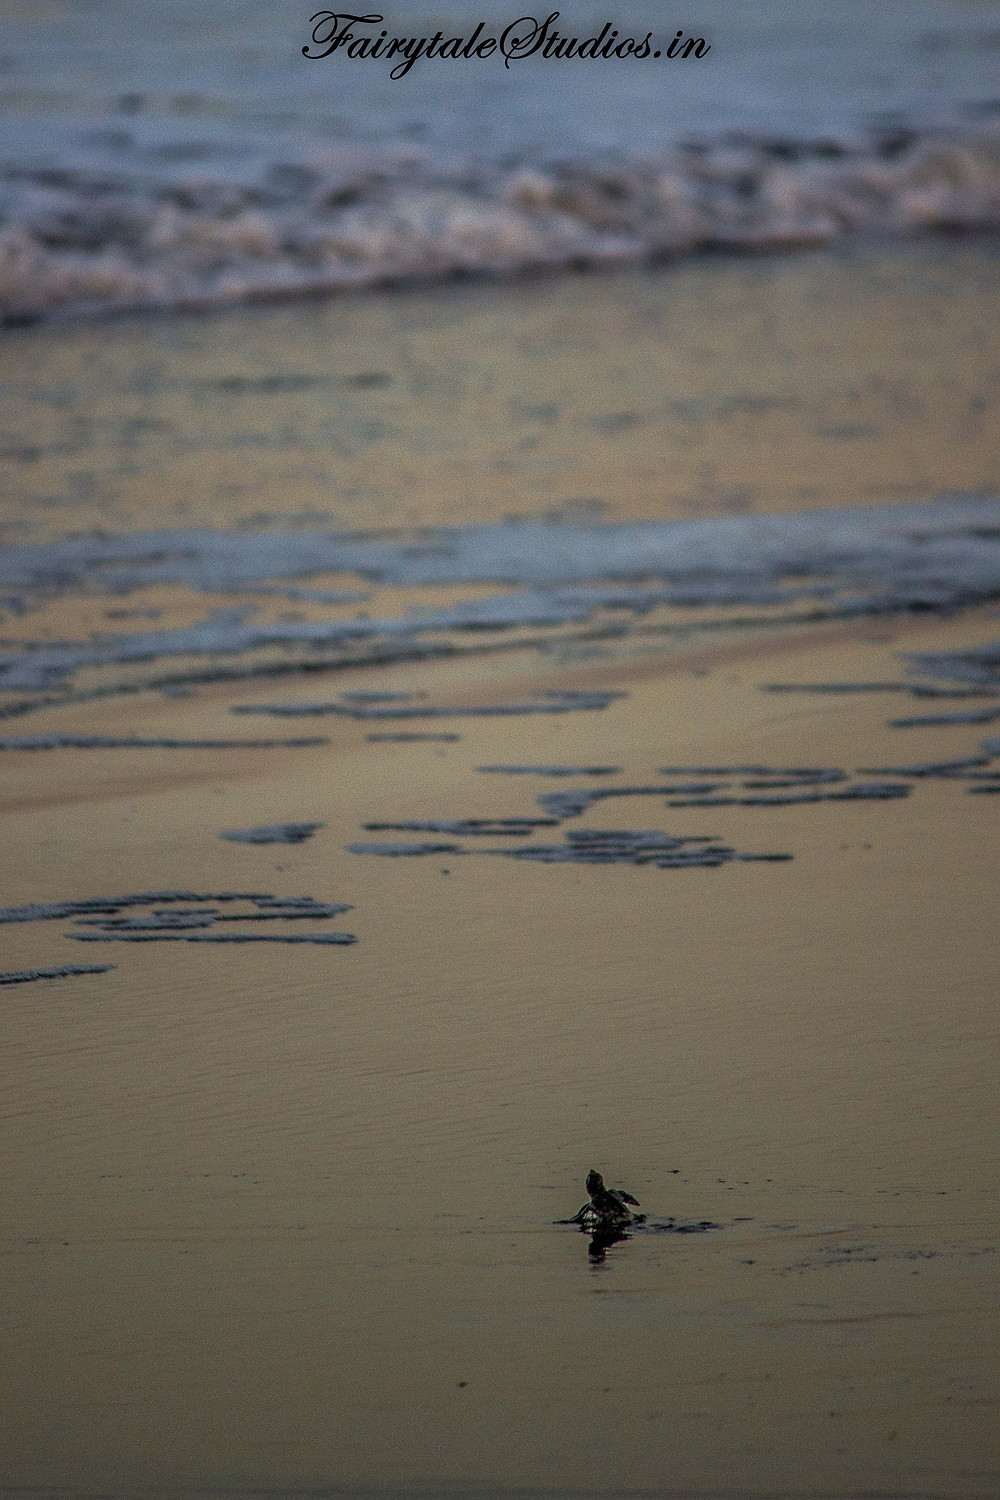 The baby olive ridley turtle awaits waves to take it into ocean during turtle festival, velas, India